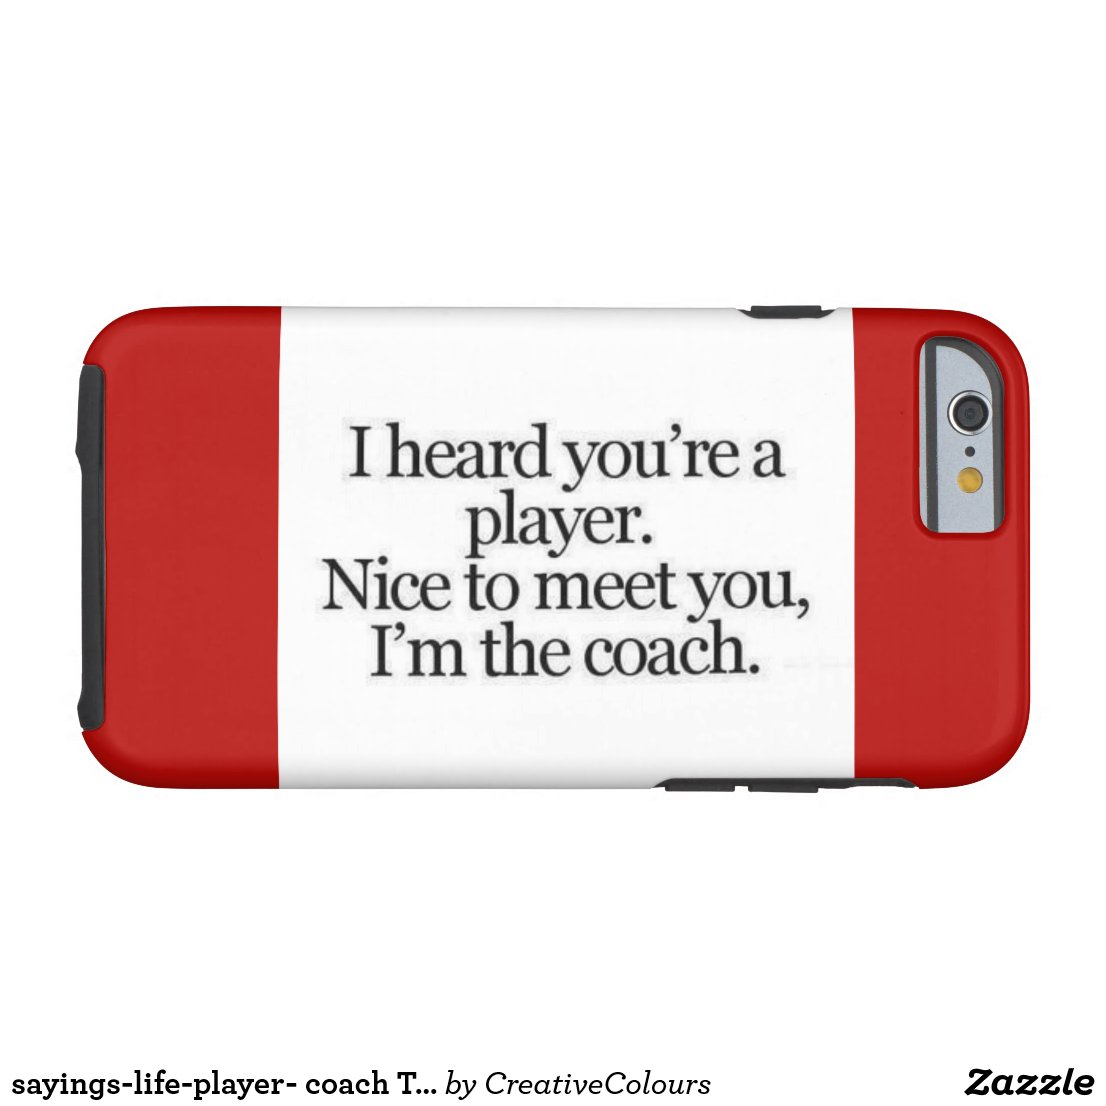 sayings-life-player- coach THEY SAY YOU ARE A PLAY Tough iPhone 6 Case